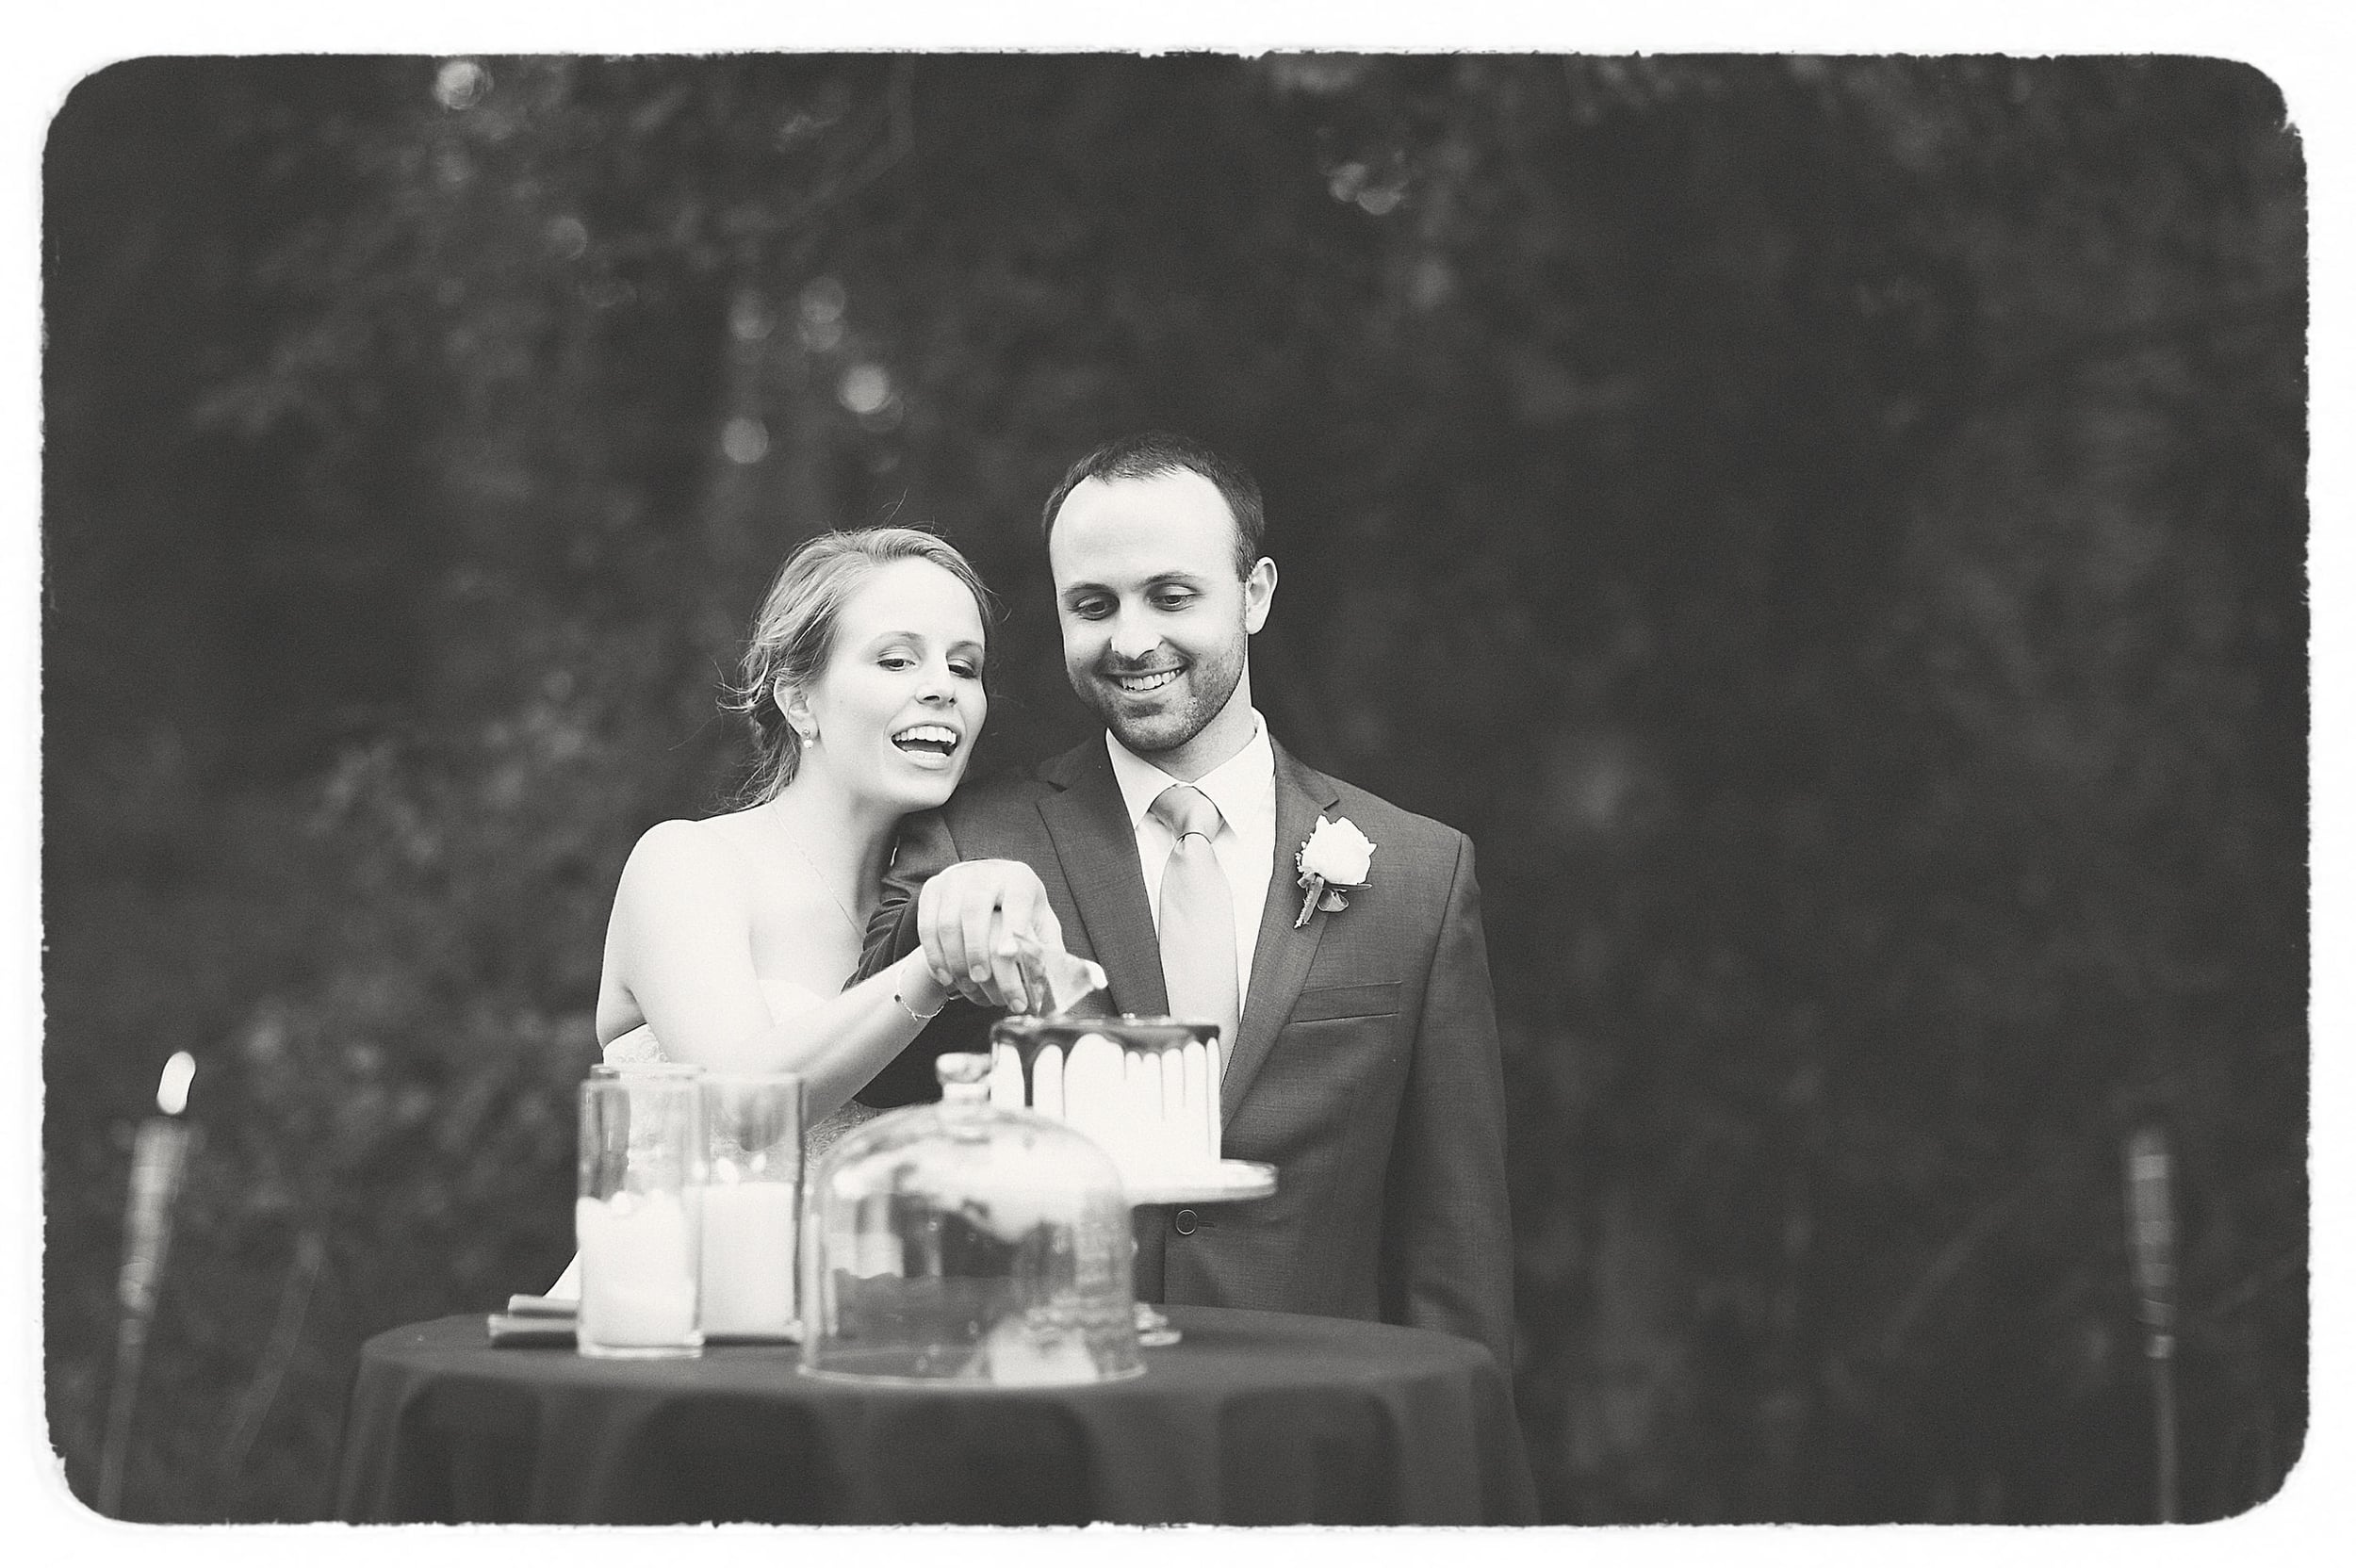 592 Kate&Marc-Wedding-B&WCollection-592Film.jpg